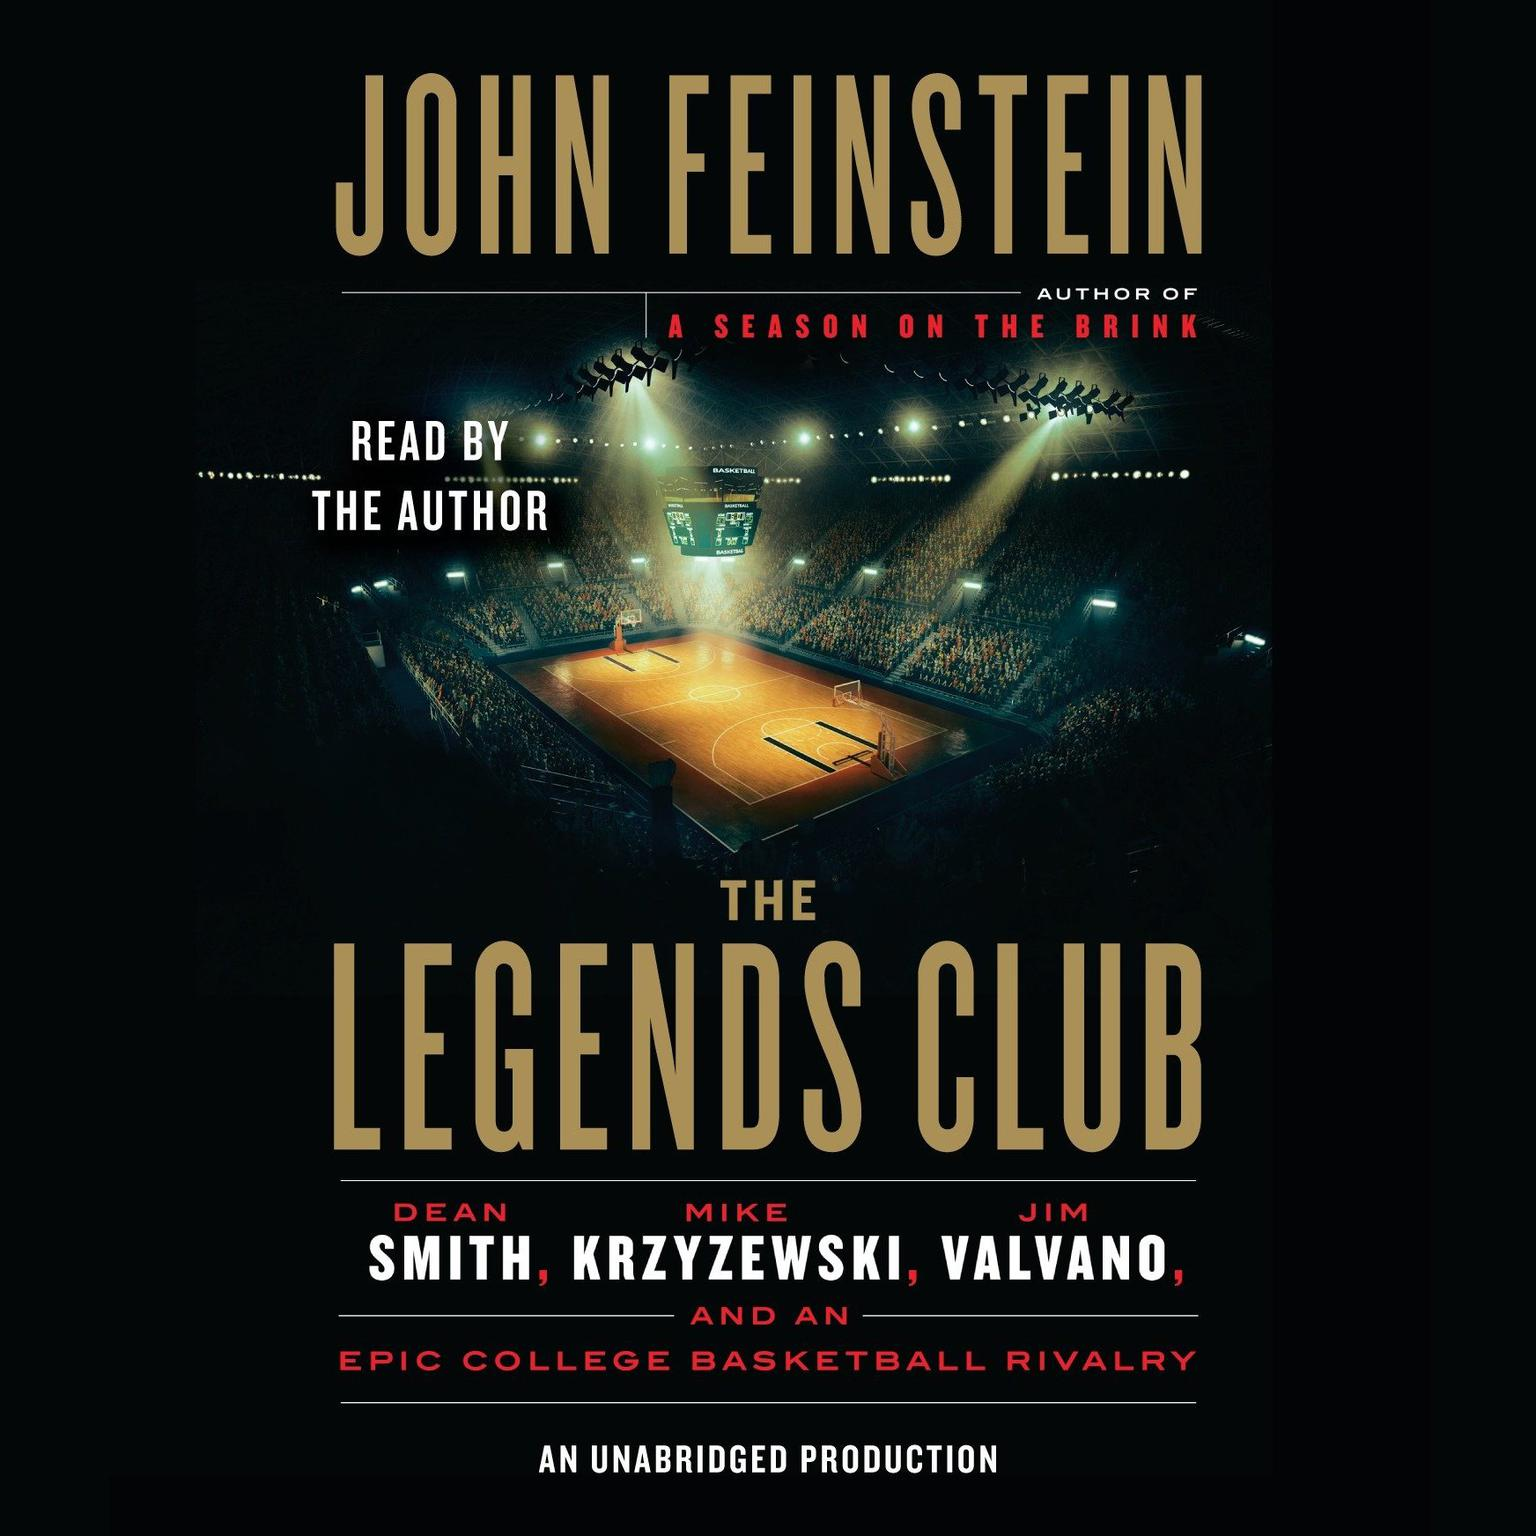 Printable The Legends Club: Dean Smith, Mike Krzyzewski, Jim Valvano, and an Epic College Basketball Rivalry Audiobook Cover Art